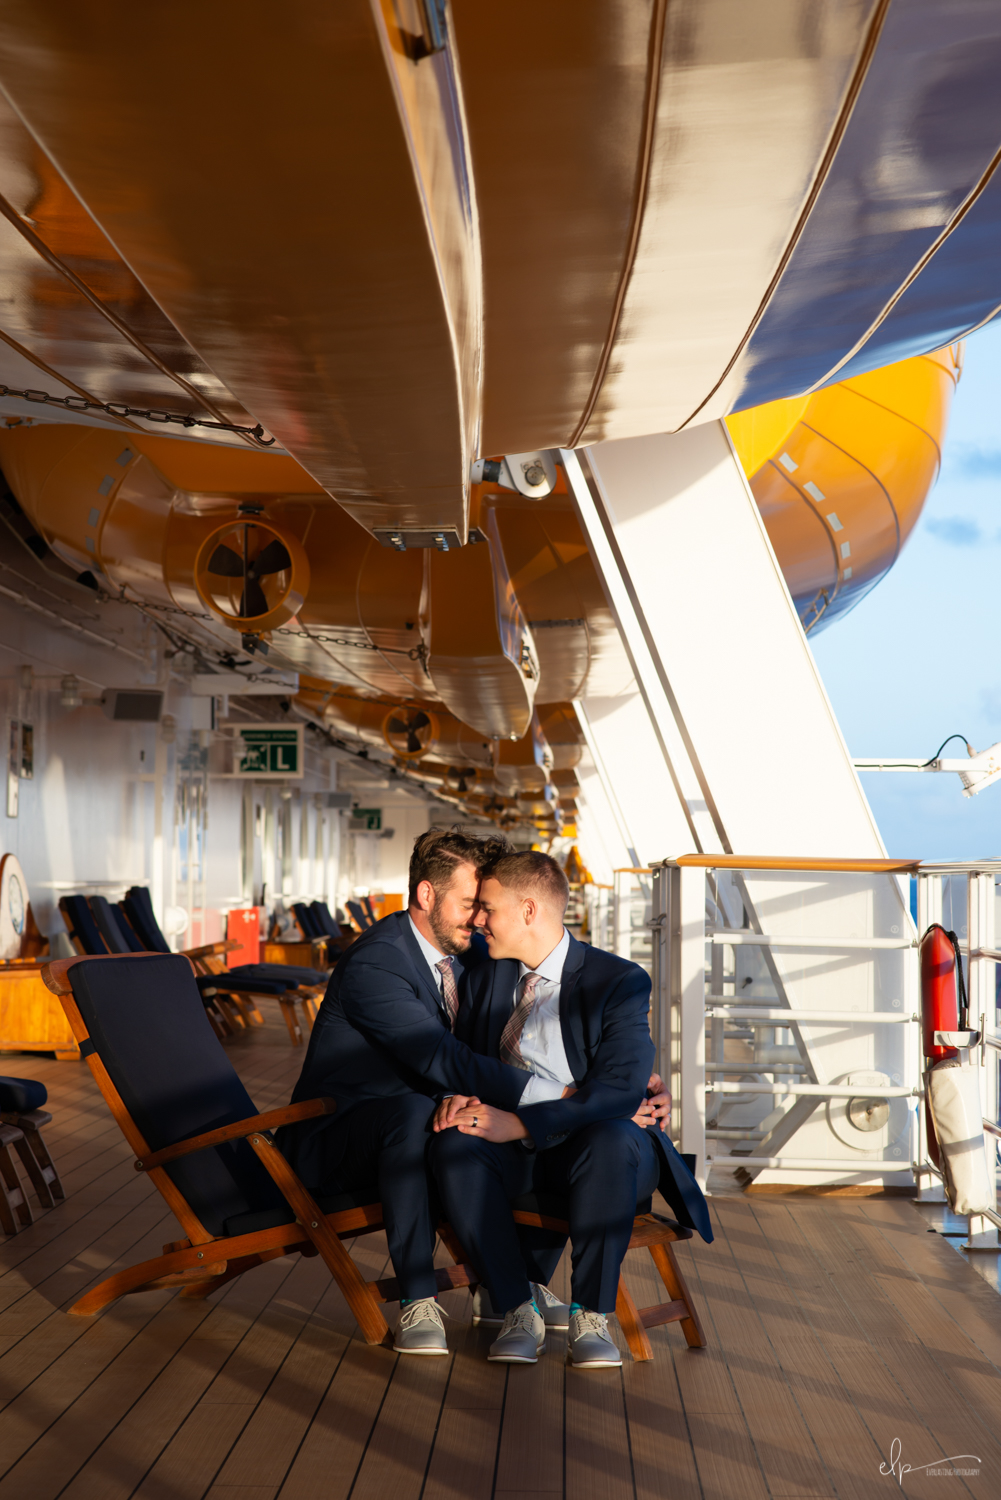 Disney-Cruise-Line-Disney-Fantasy-Wedding-Photography-2.jpg